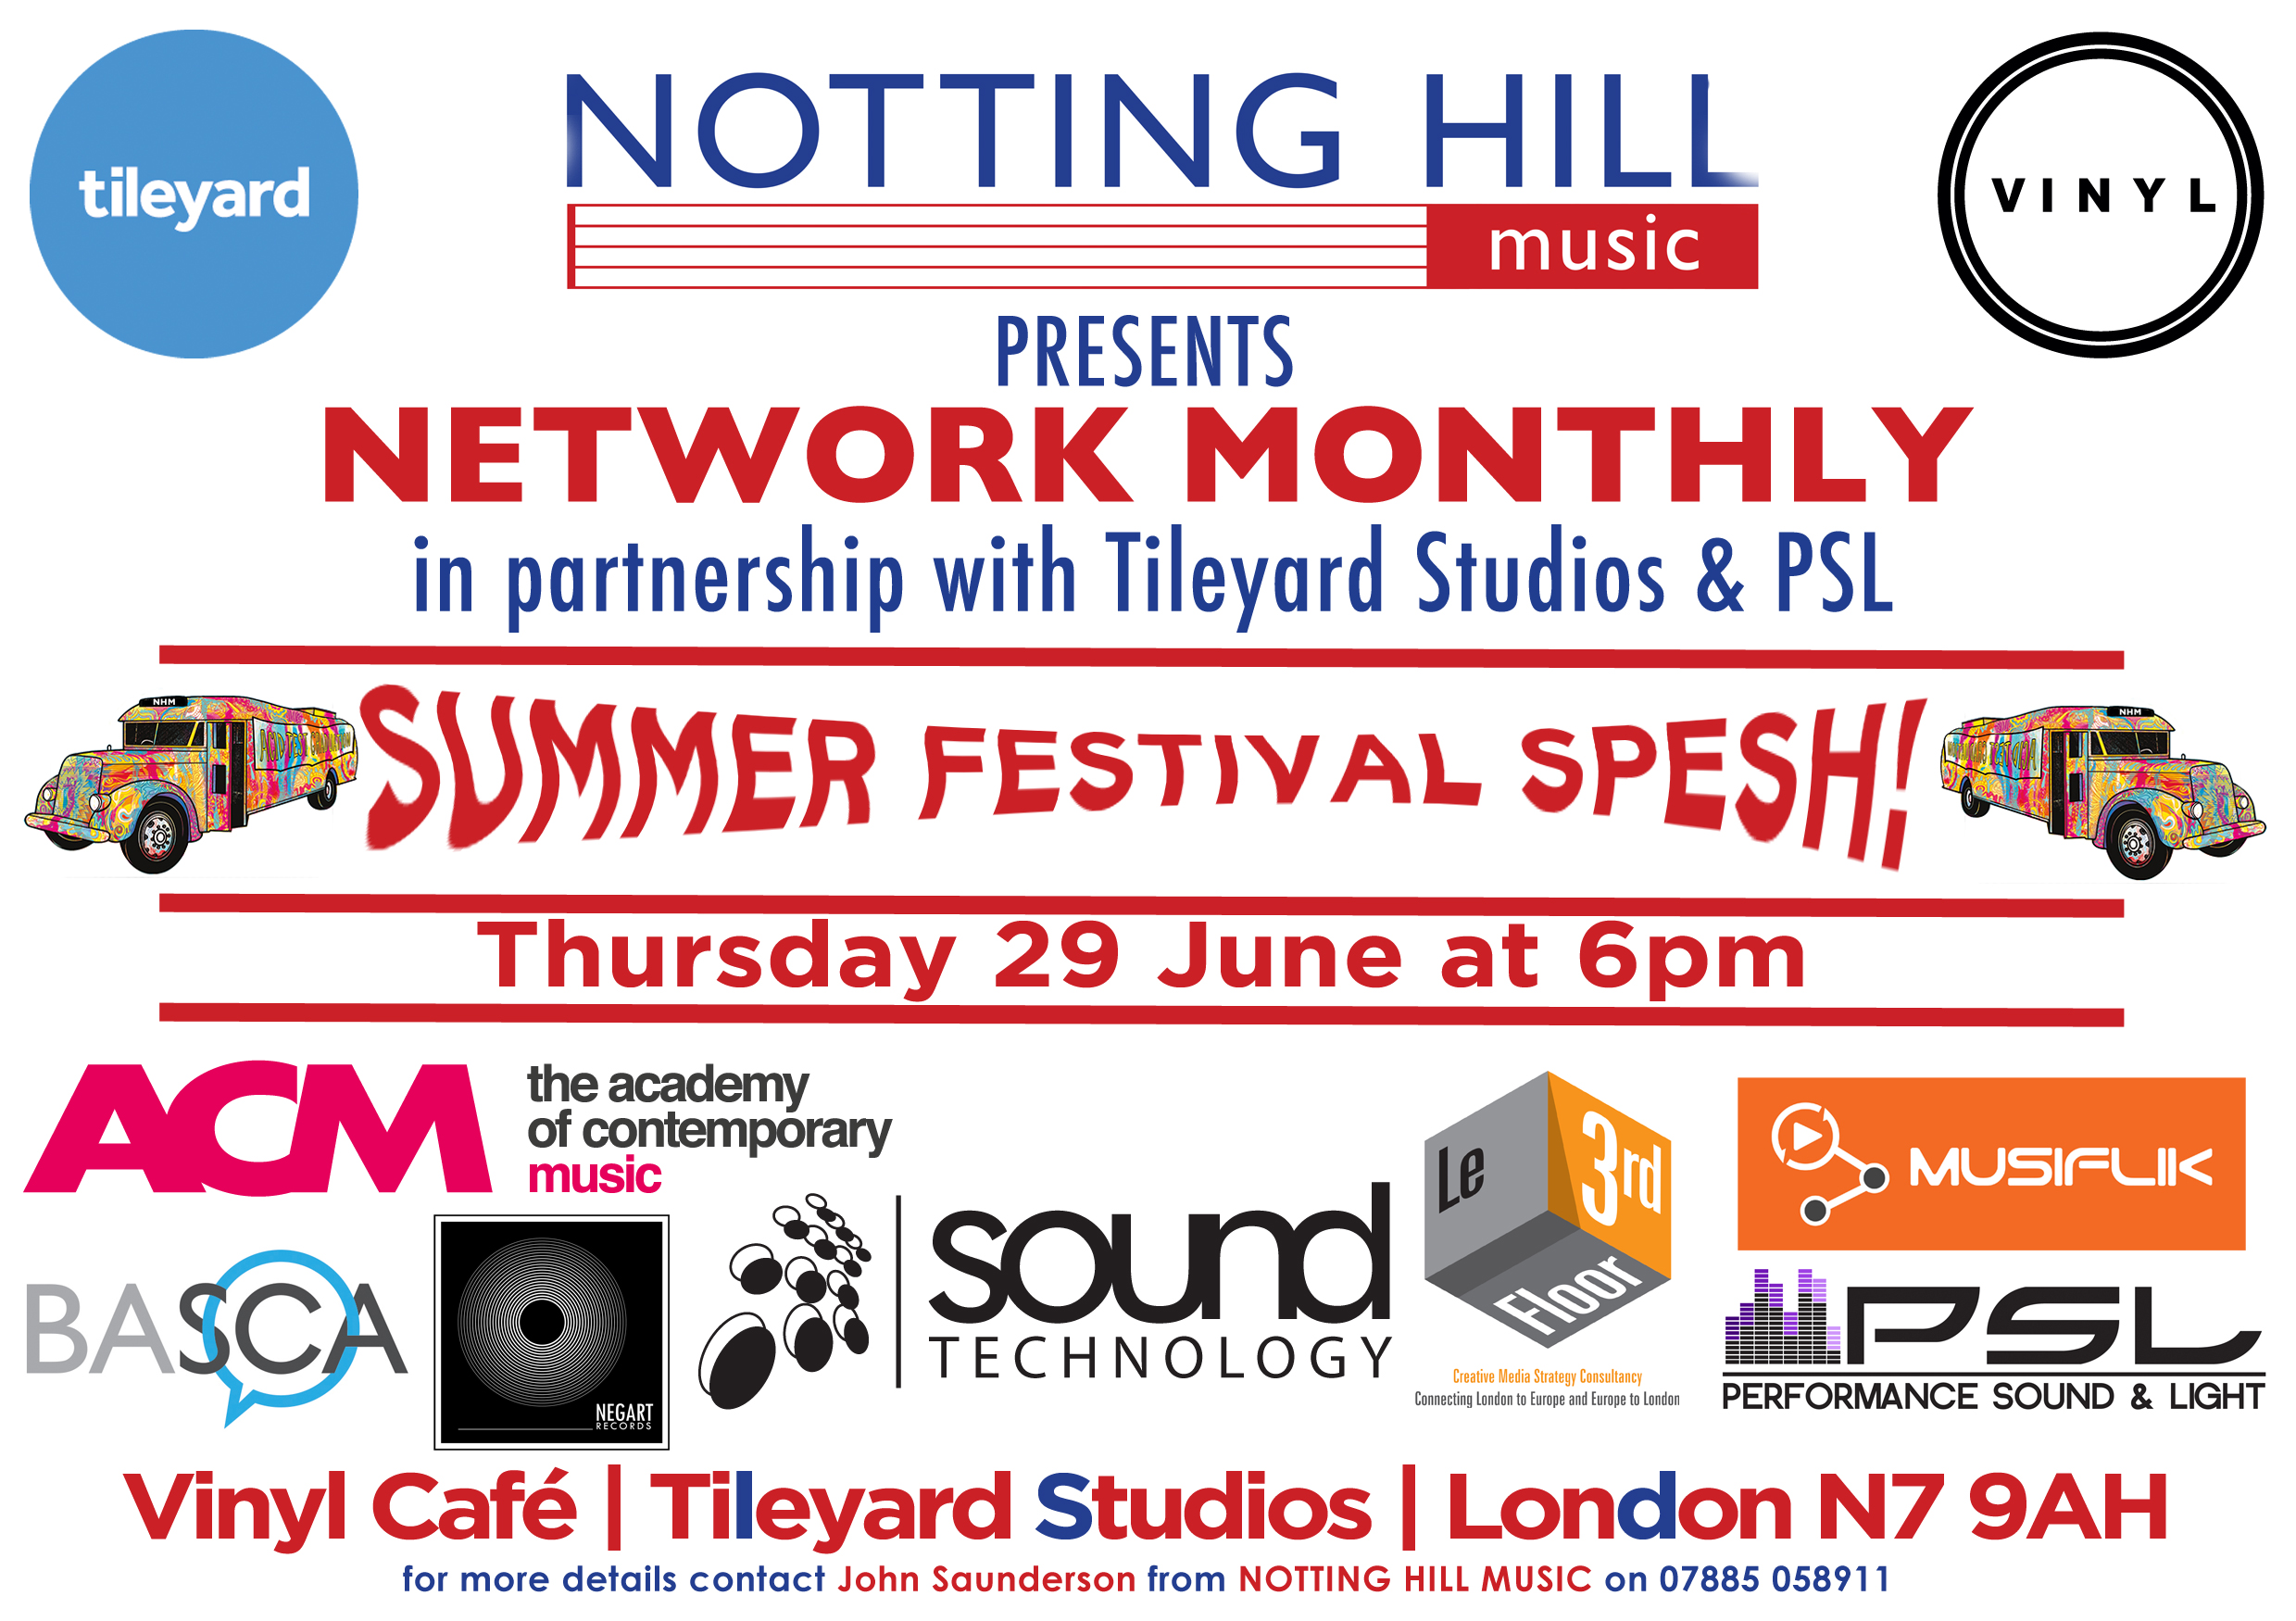 Next networking event on Thursday 29 June